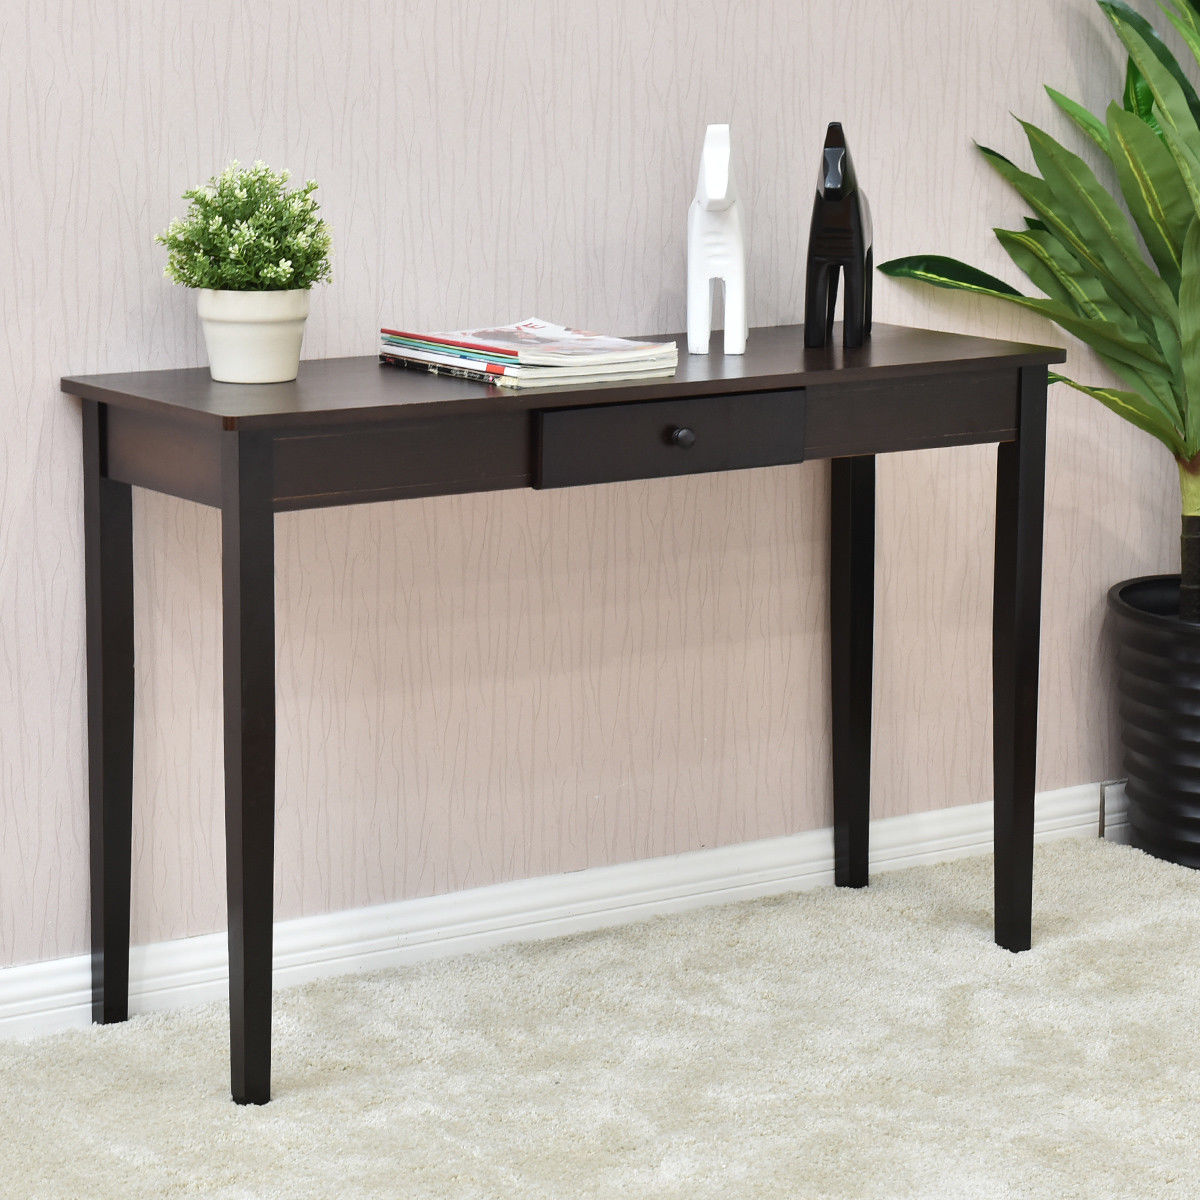 Giantex console table entry hallway desk entryway side sofa accent table with drawer modern wood living room furniture hw56071